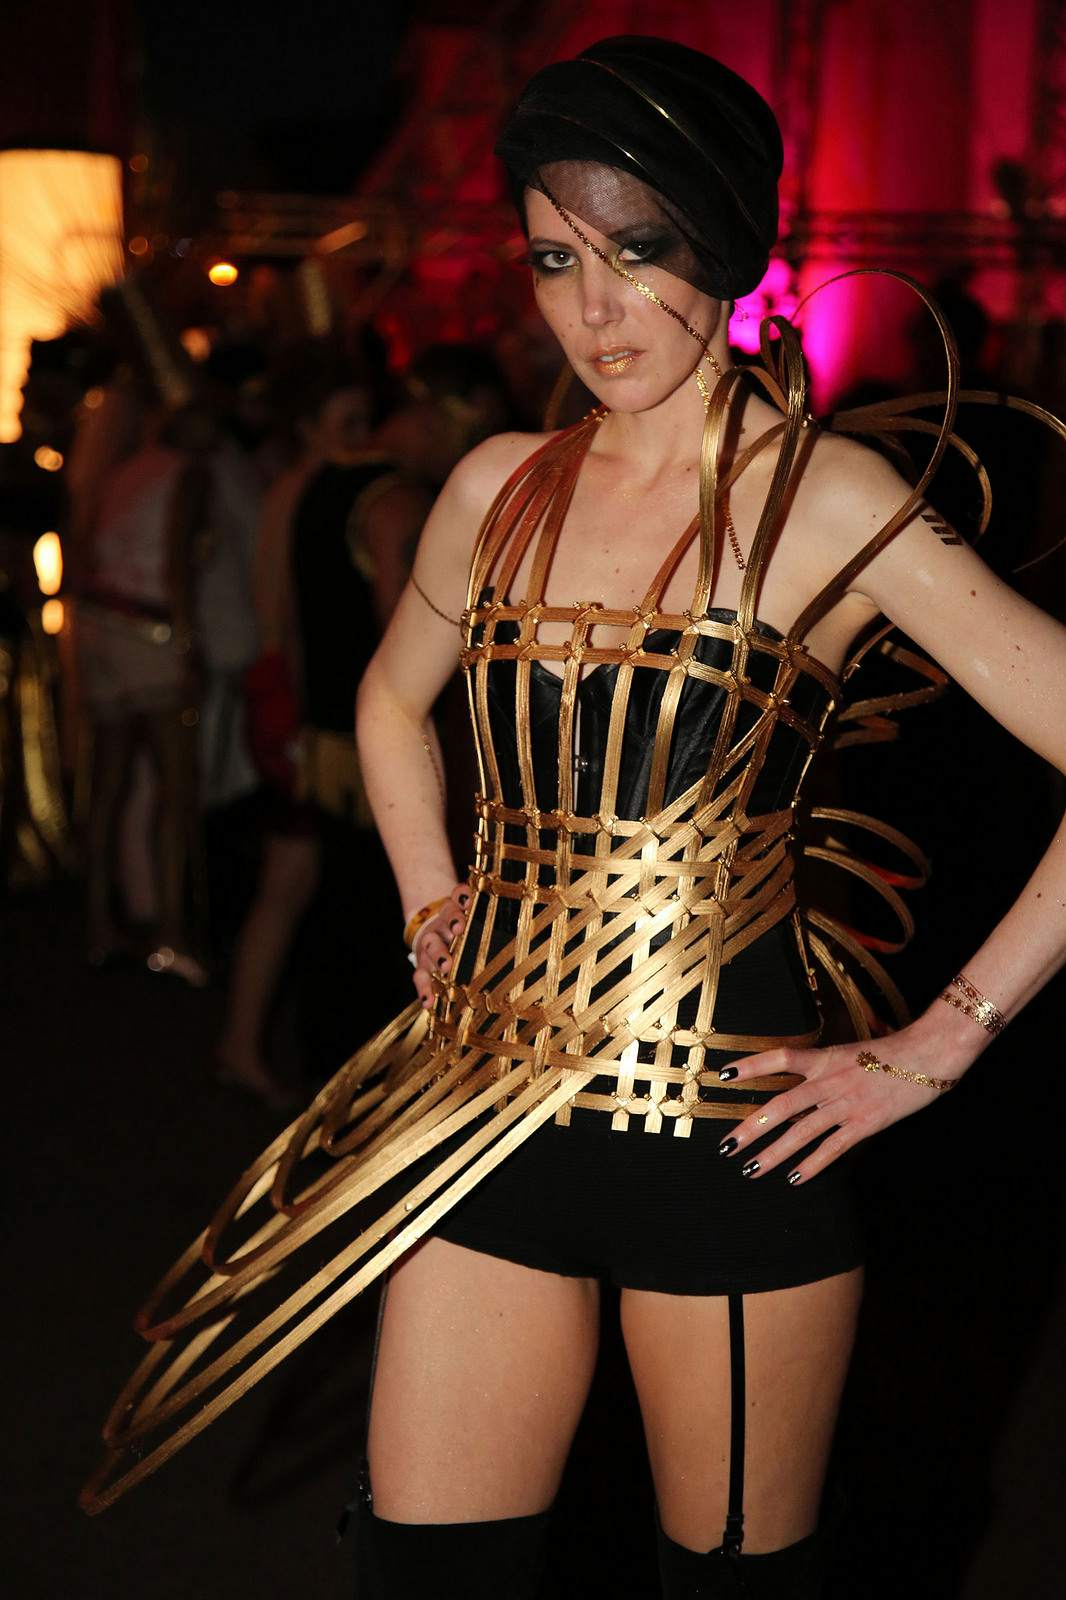 life ball21 Life Ball 2015 in Wien